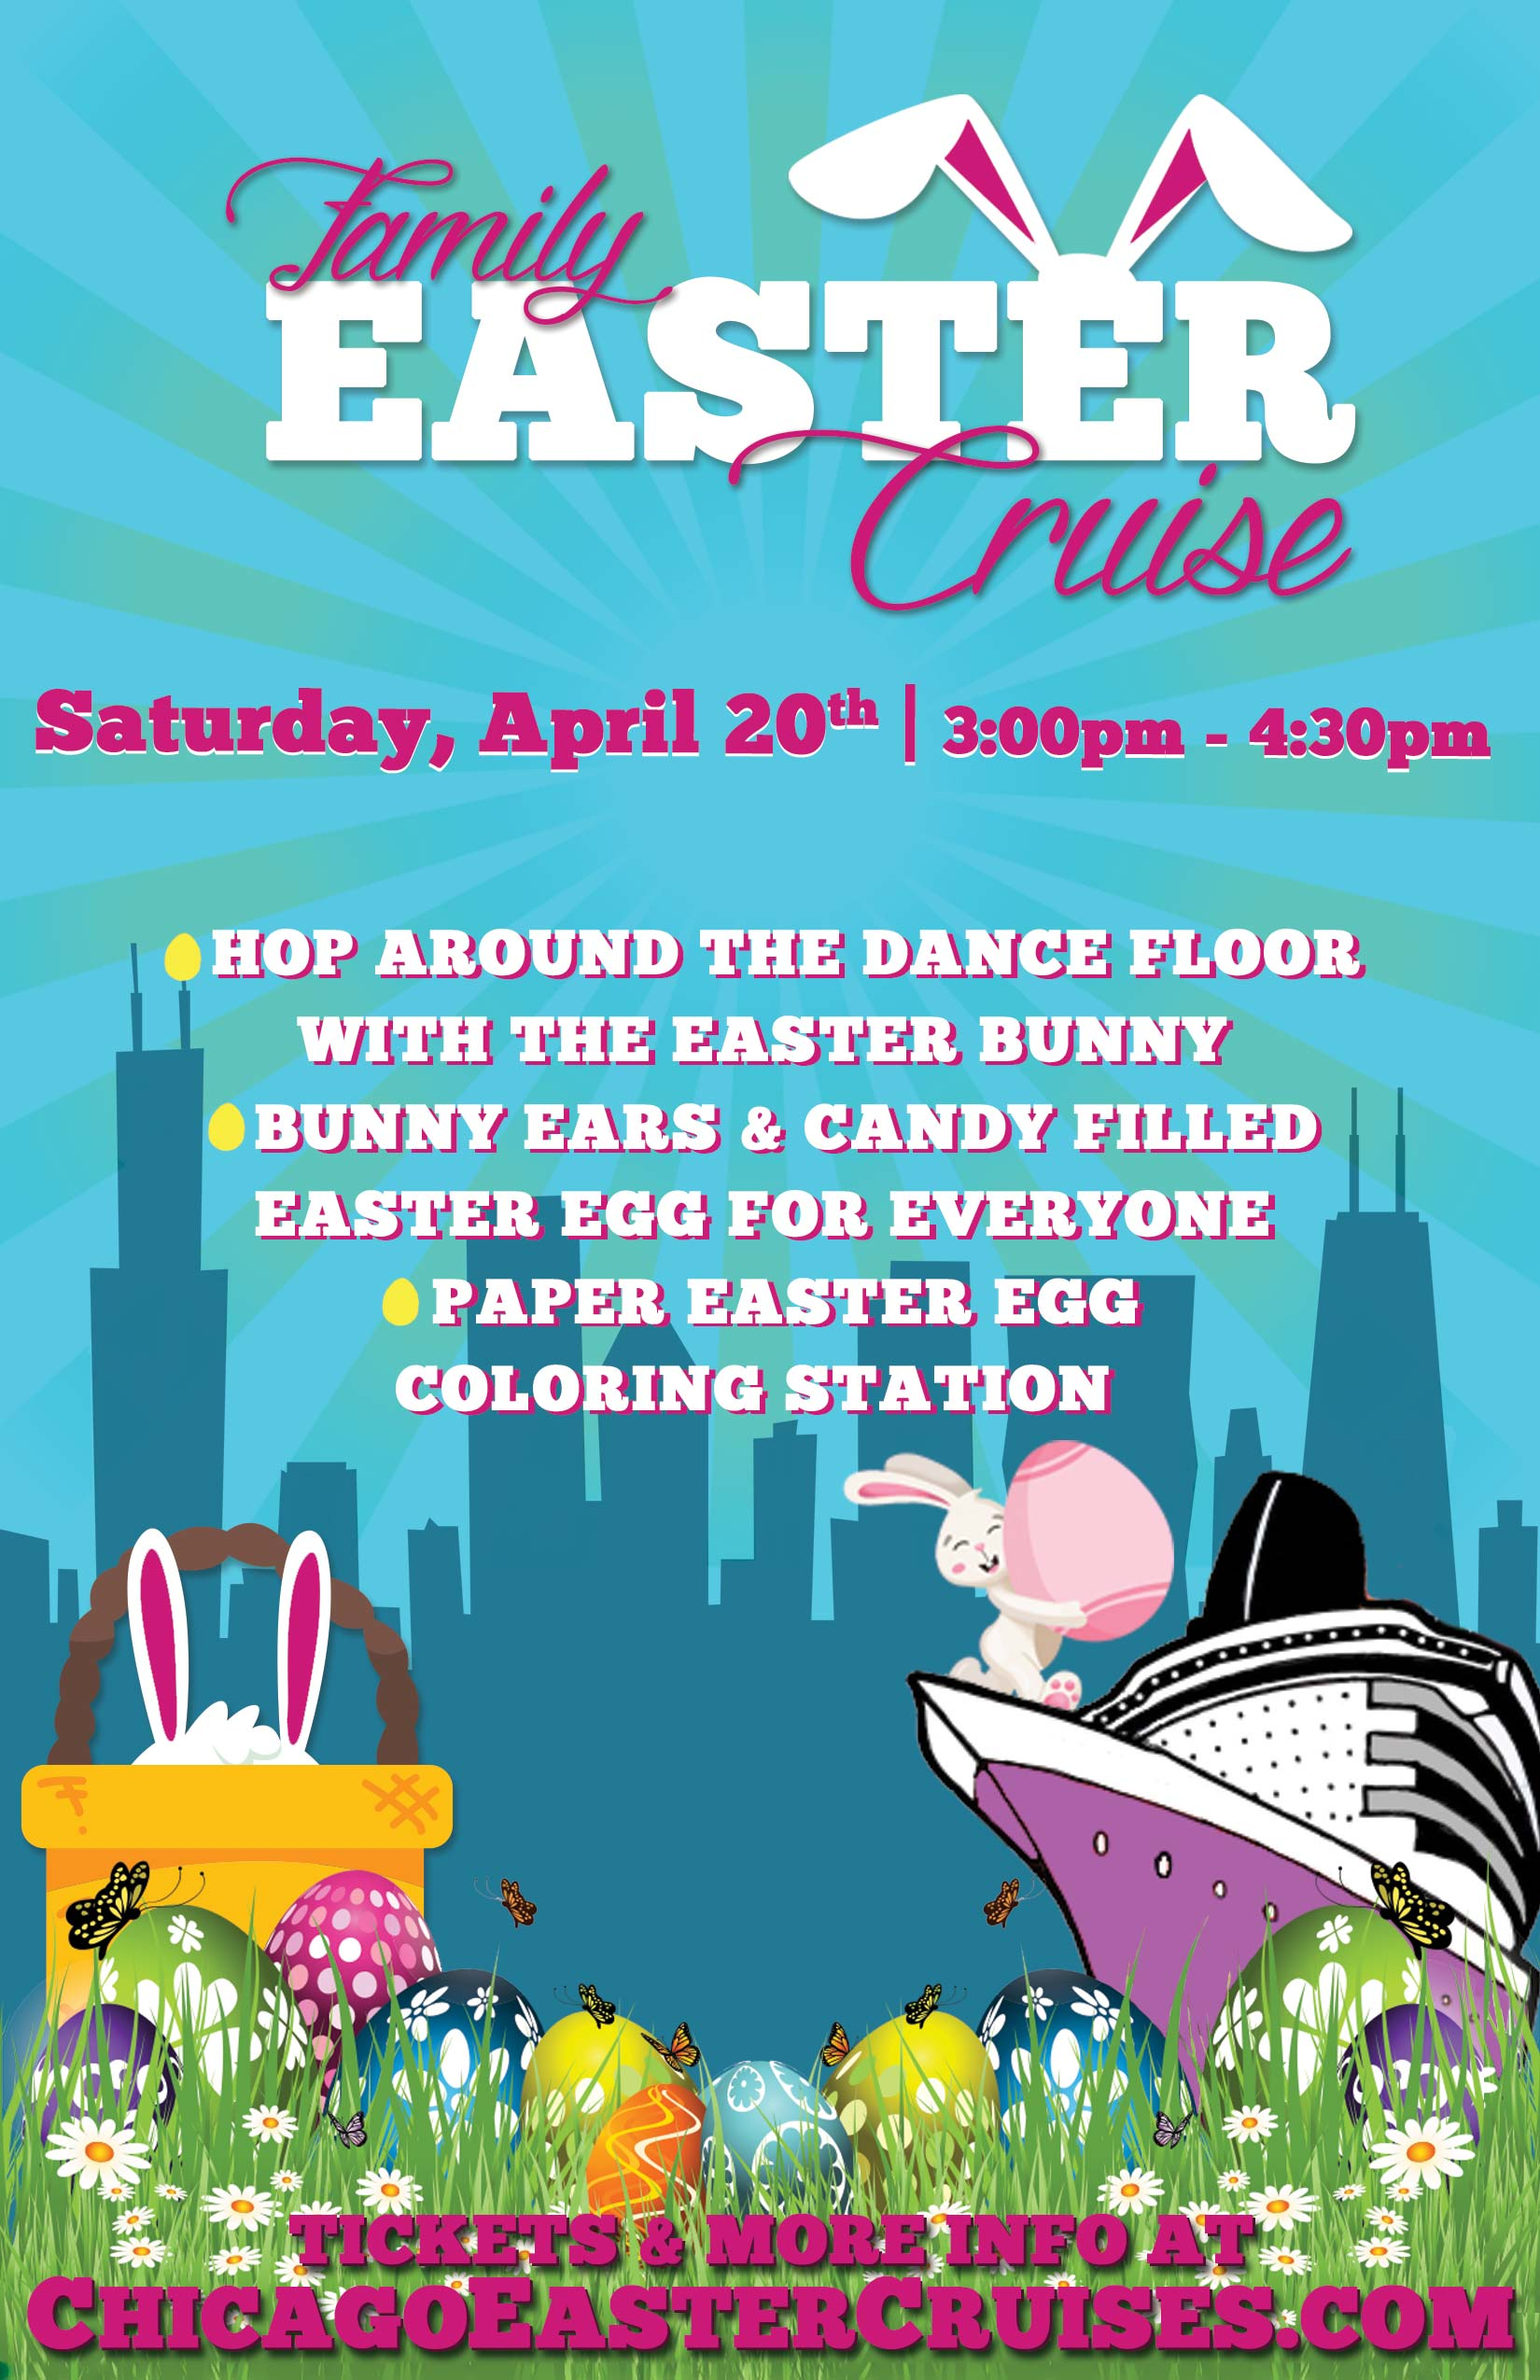 Family Easter Cruise Party on Lake Michigan - While on the cruise, enjoy all of the following: Hop around on the dance floor with the Easter Bunny! Bunny ears and candy filled easter eggs for everyone. Shake your groove thing to some family friendly party tunes on the dance floor! Show off your artistic side by taking advantage of our paper Easter Egg coloring station. Enjoy the best views of the Chicago skyline from our top deck. Snap a pic while you're at it! Cocktails will be available for those of age!